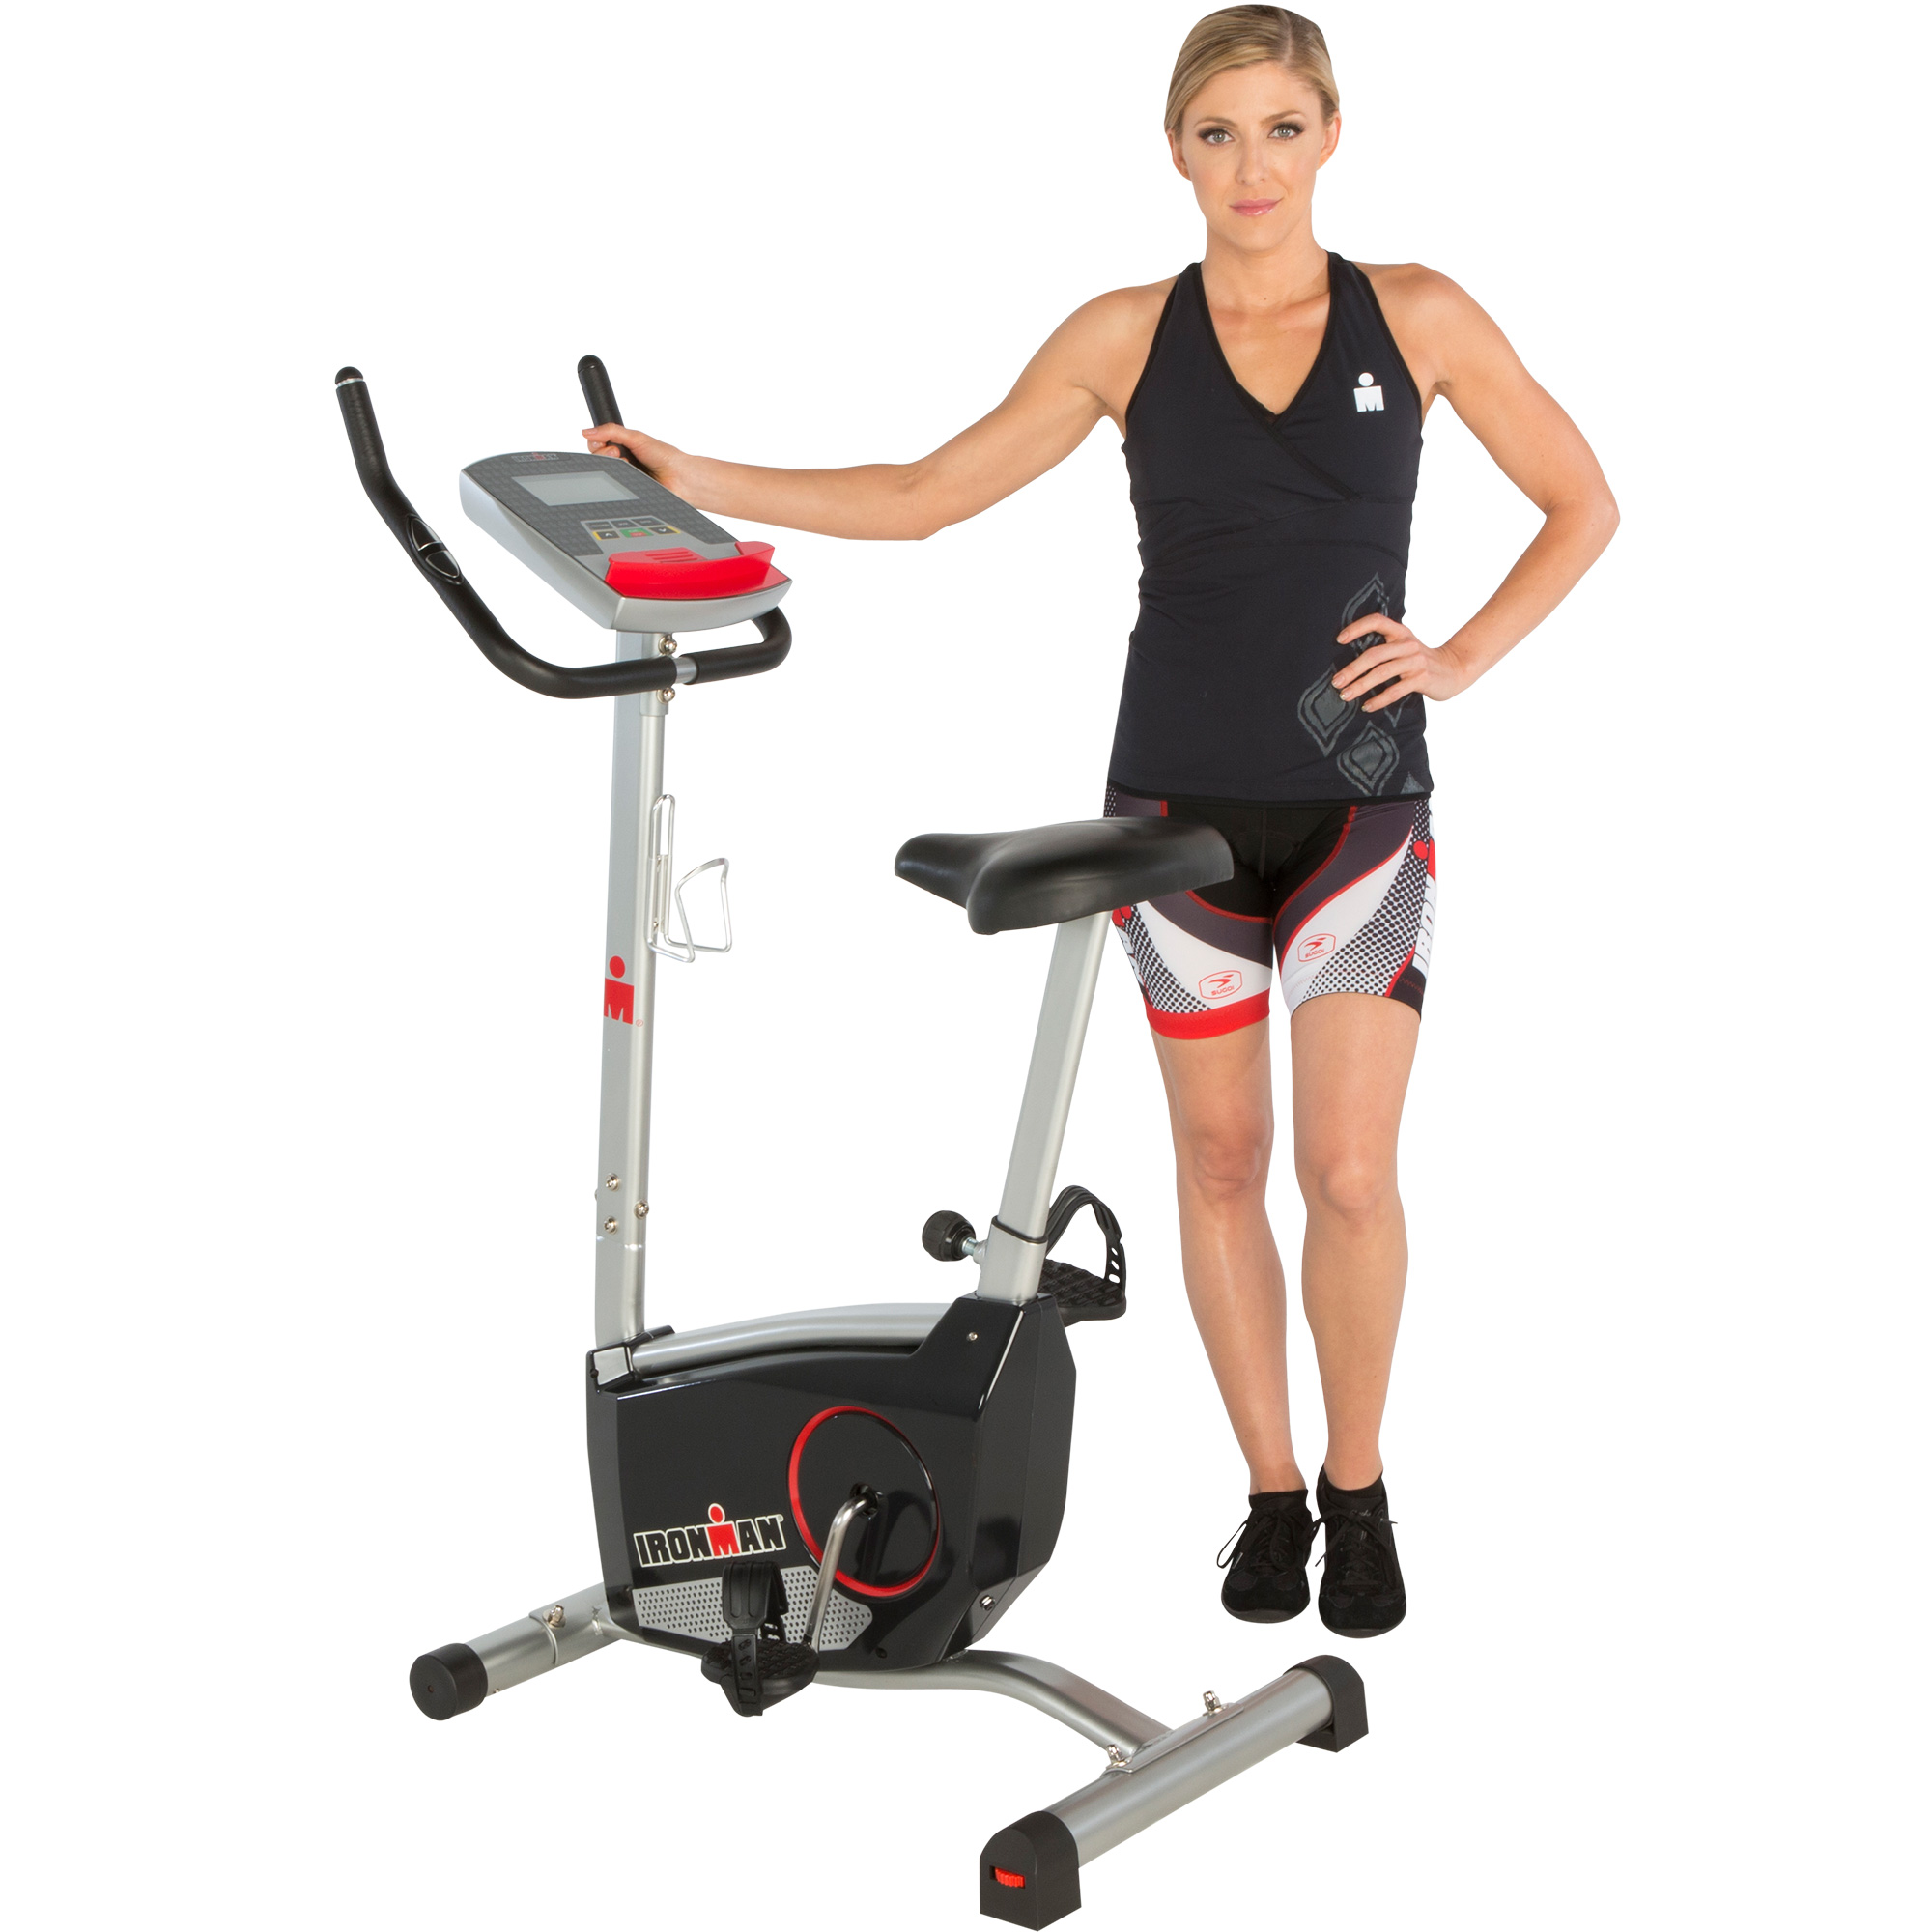 Ironman -class 210 Indoor Upright Exercise Bike With 21